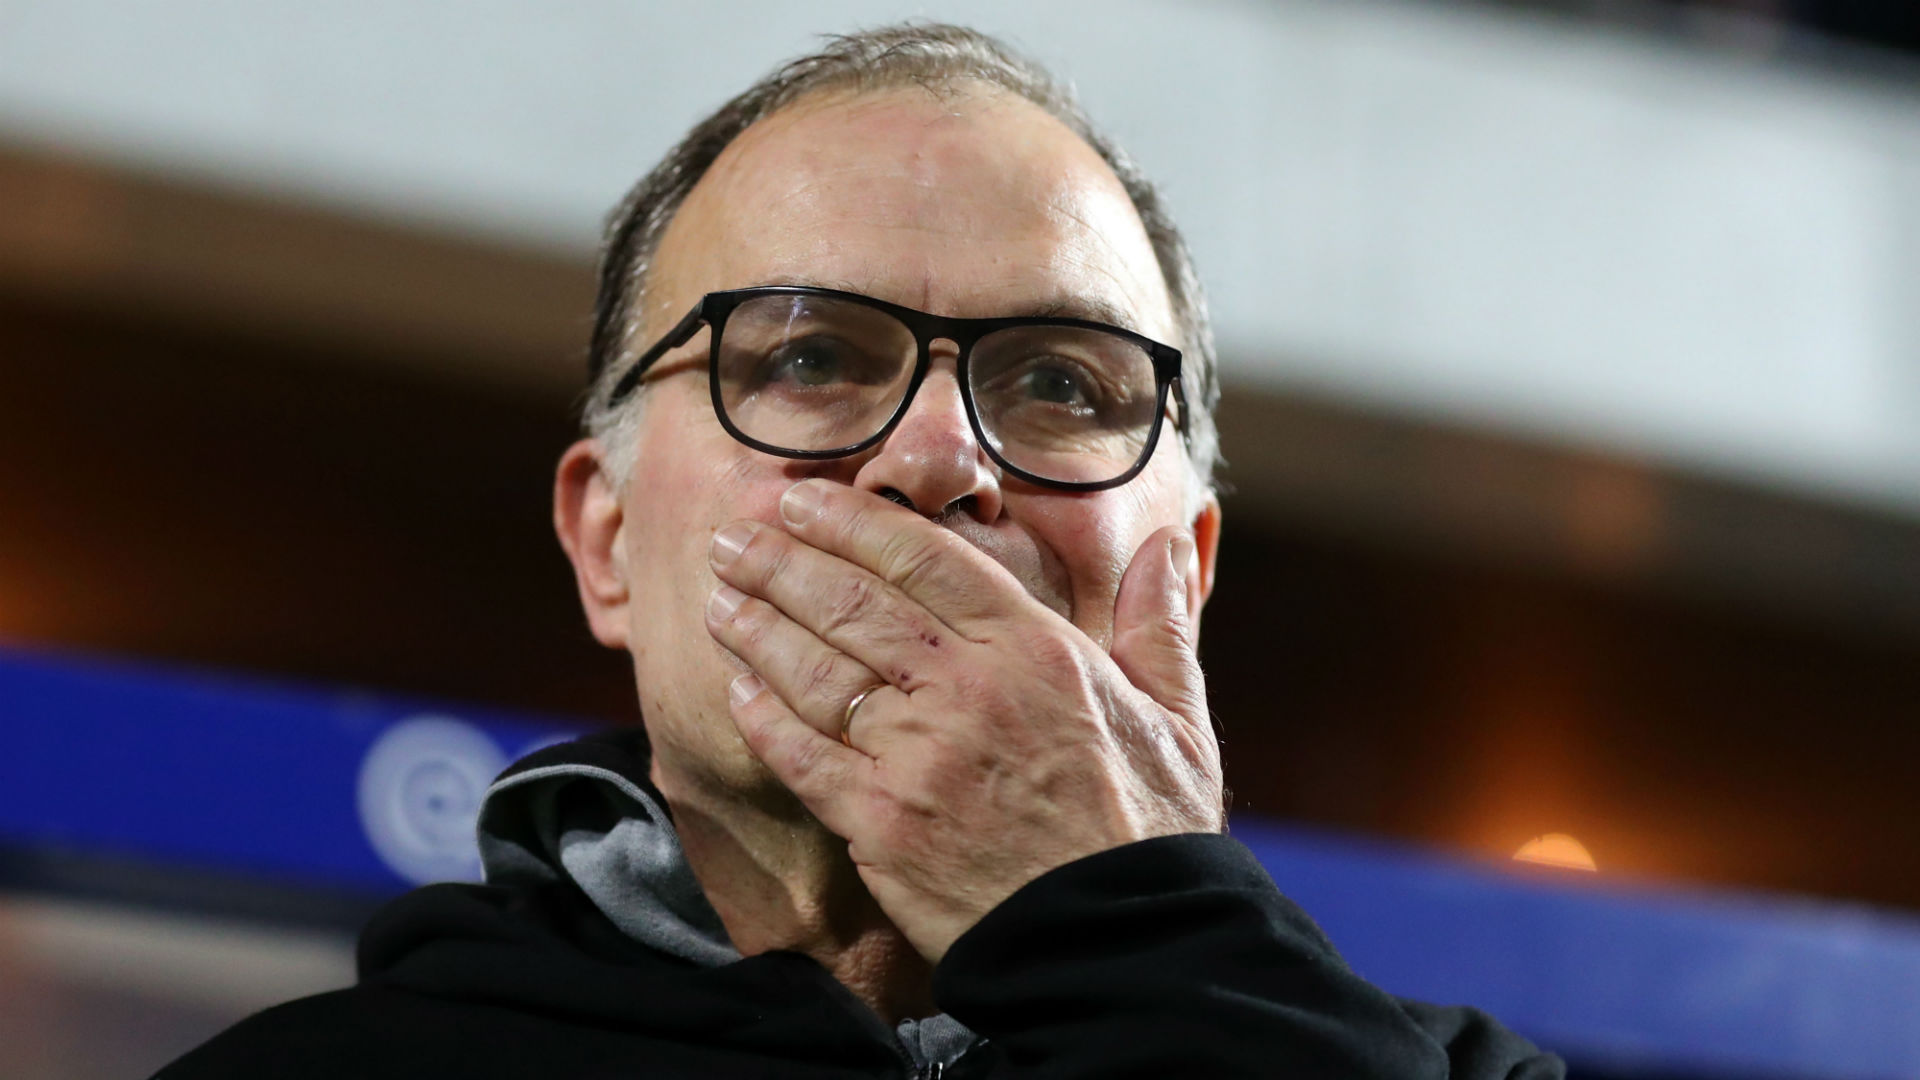 Wilder beats Bielsa to Championship award, only two Leeds players in Team of the Season